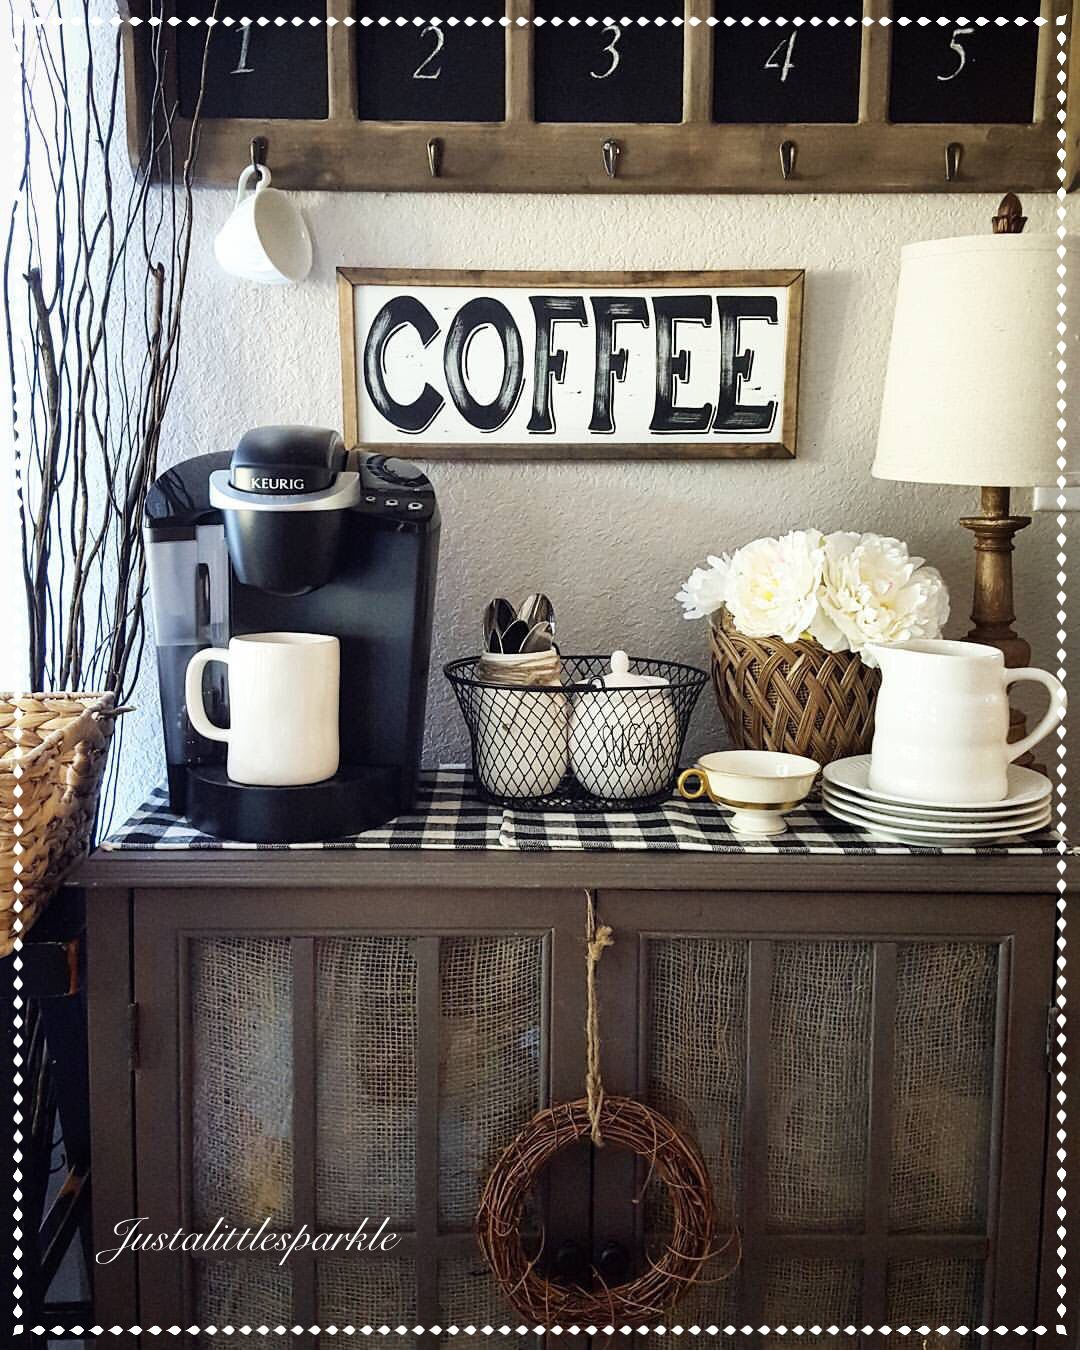 Farmhouse Coffee Shop 25 Diy Coffee Bar Ideas For Your Home Stunning Pictures